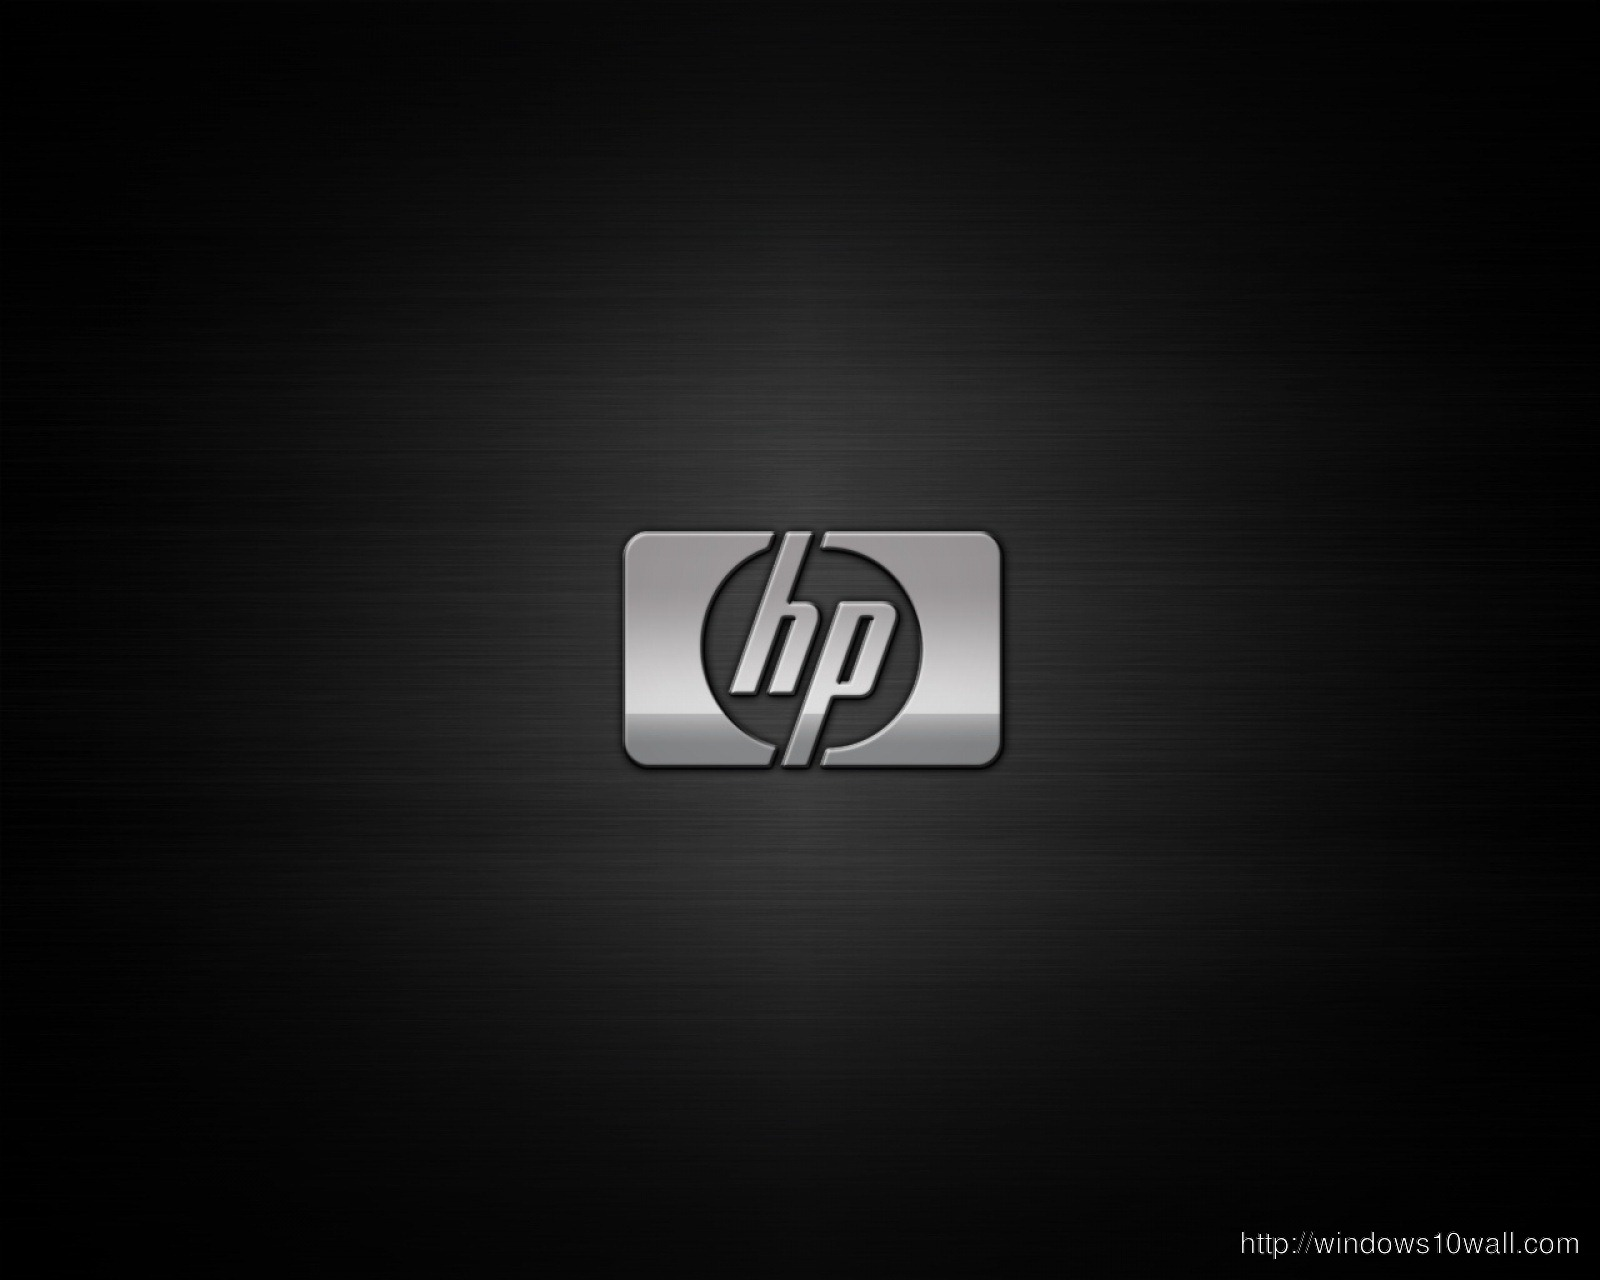 HP In Black Background Wallpaper New Wallpaper HP In Black Background ...